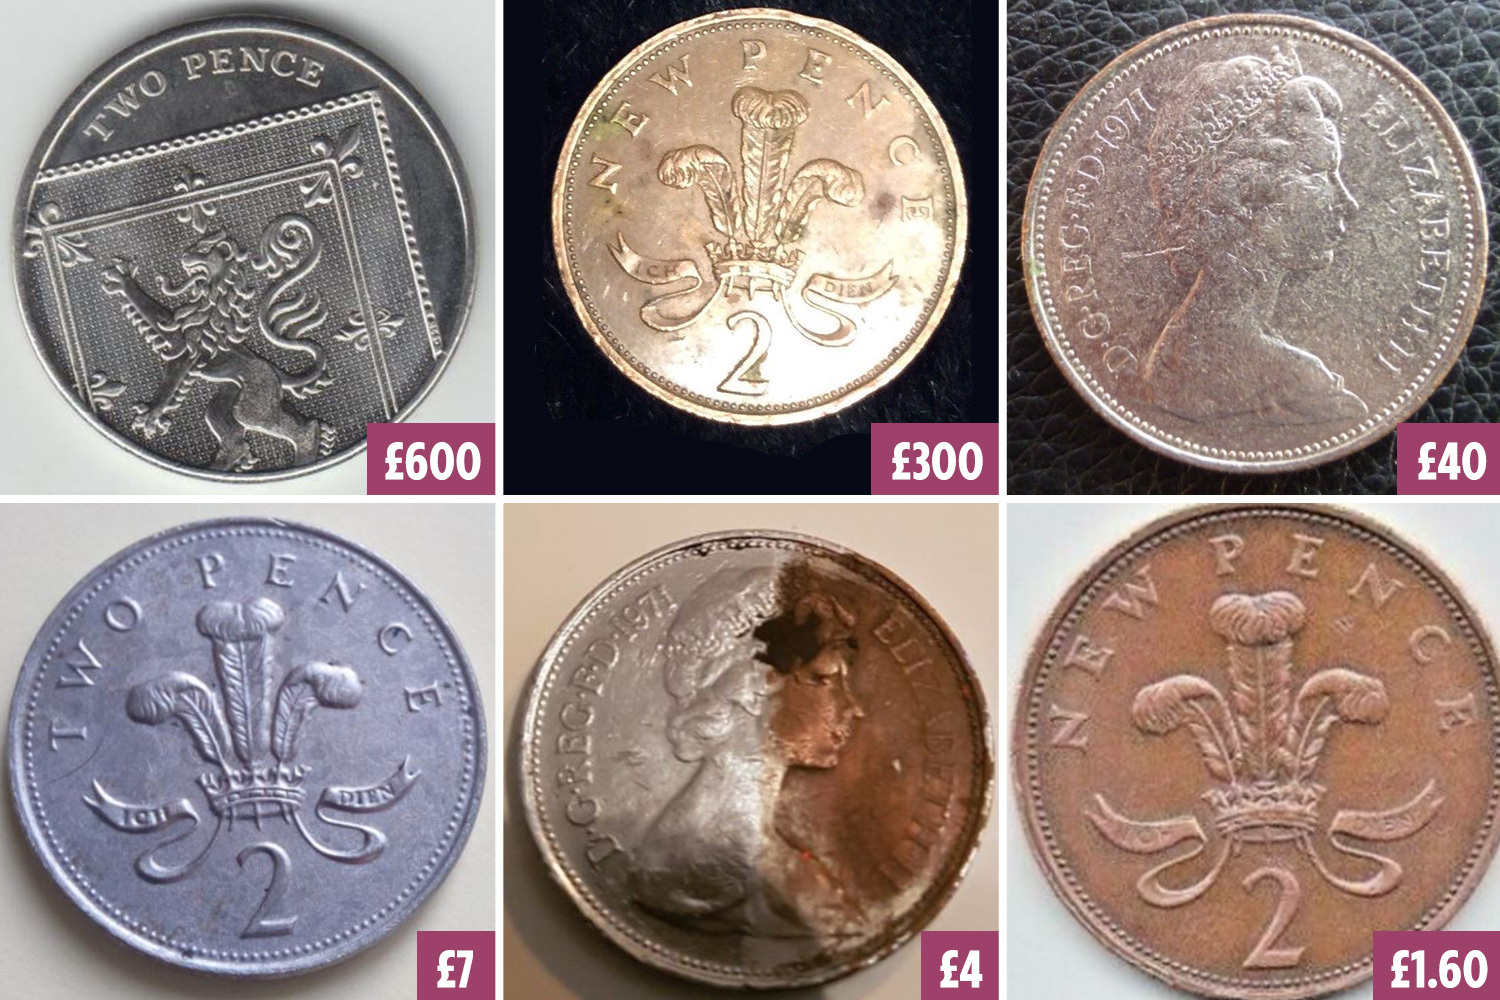 Check your pockets! We round up some of the rarest 2p coins in circulation